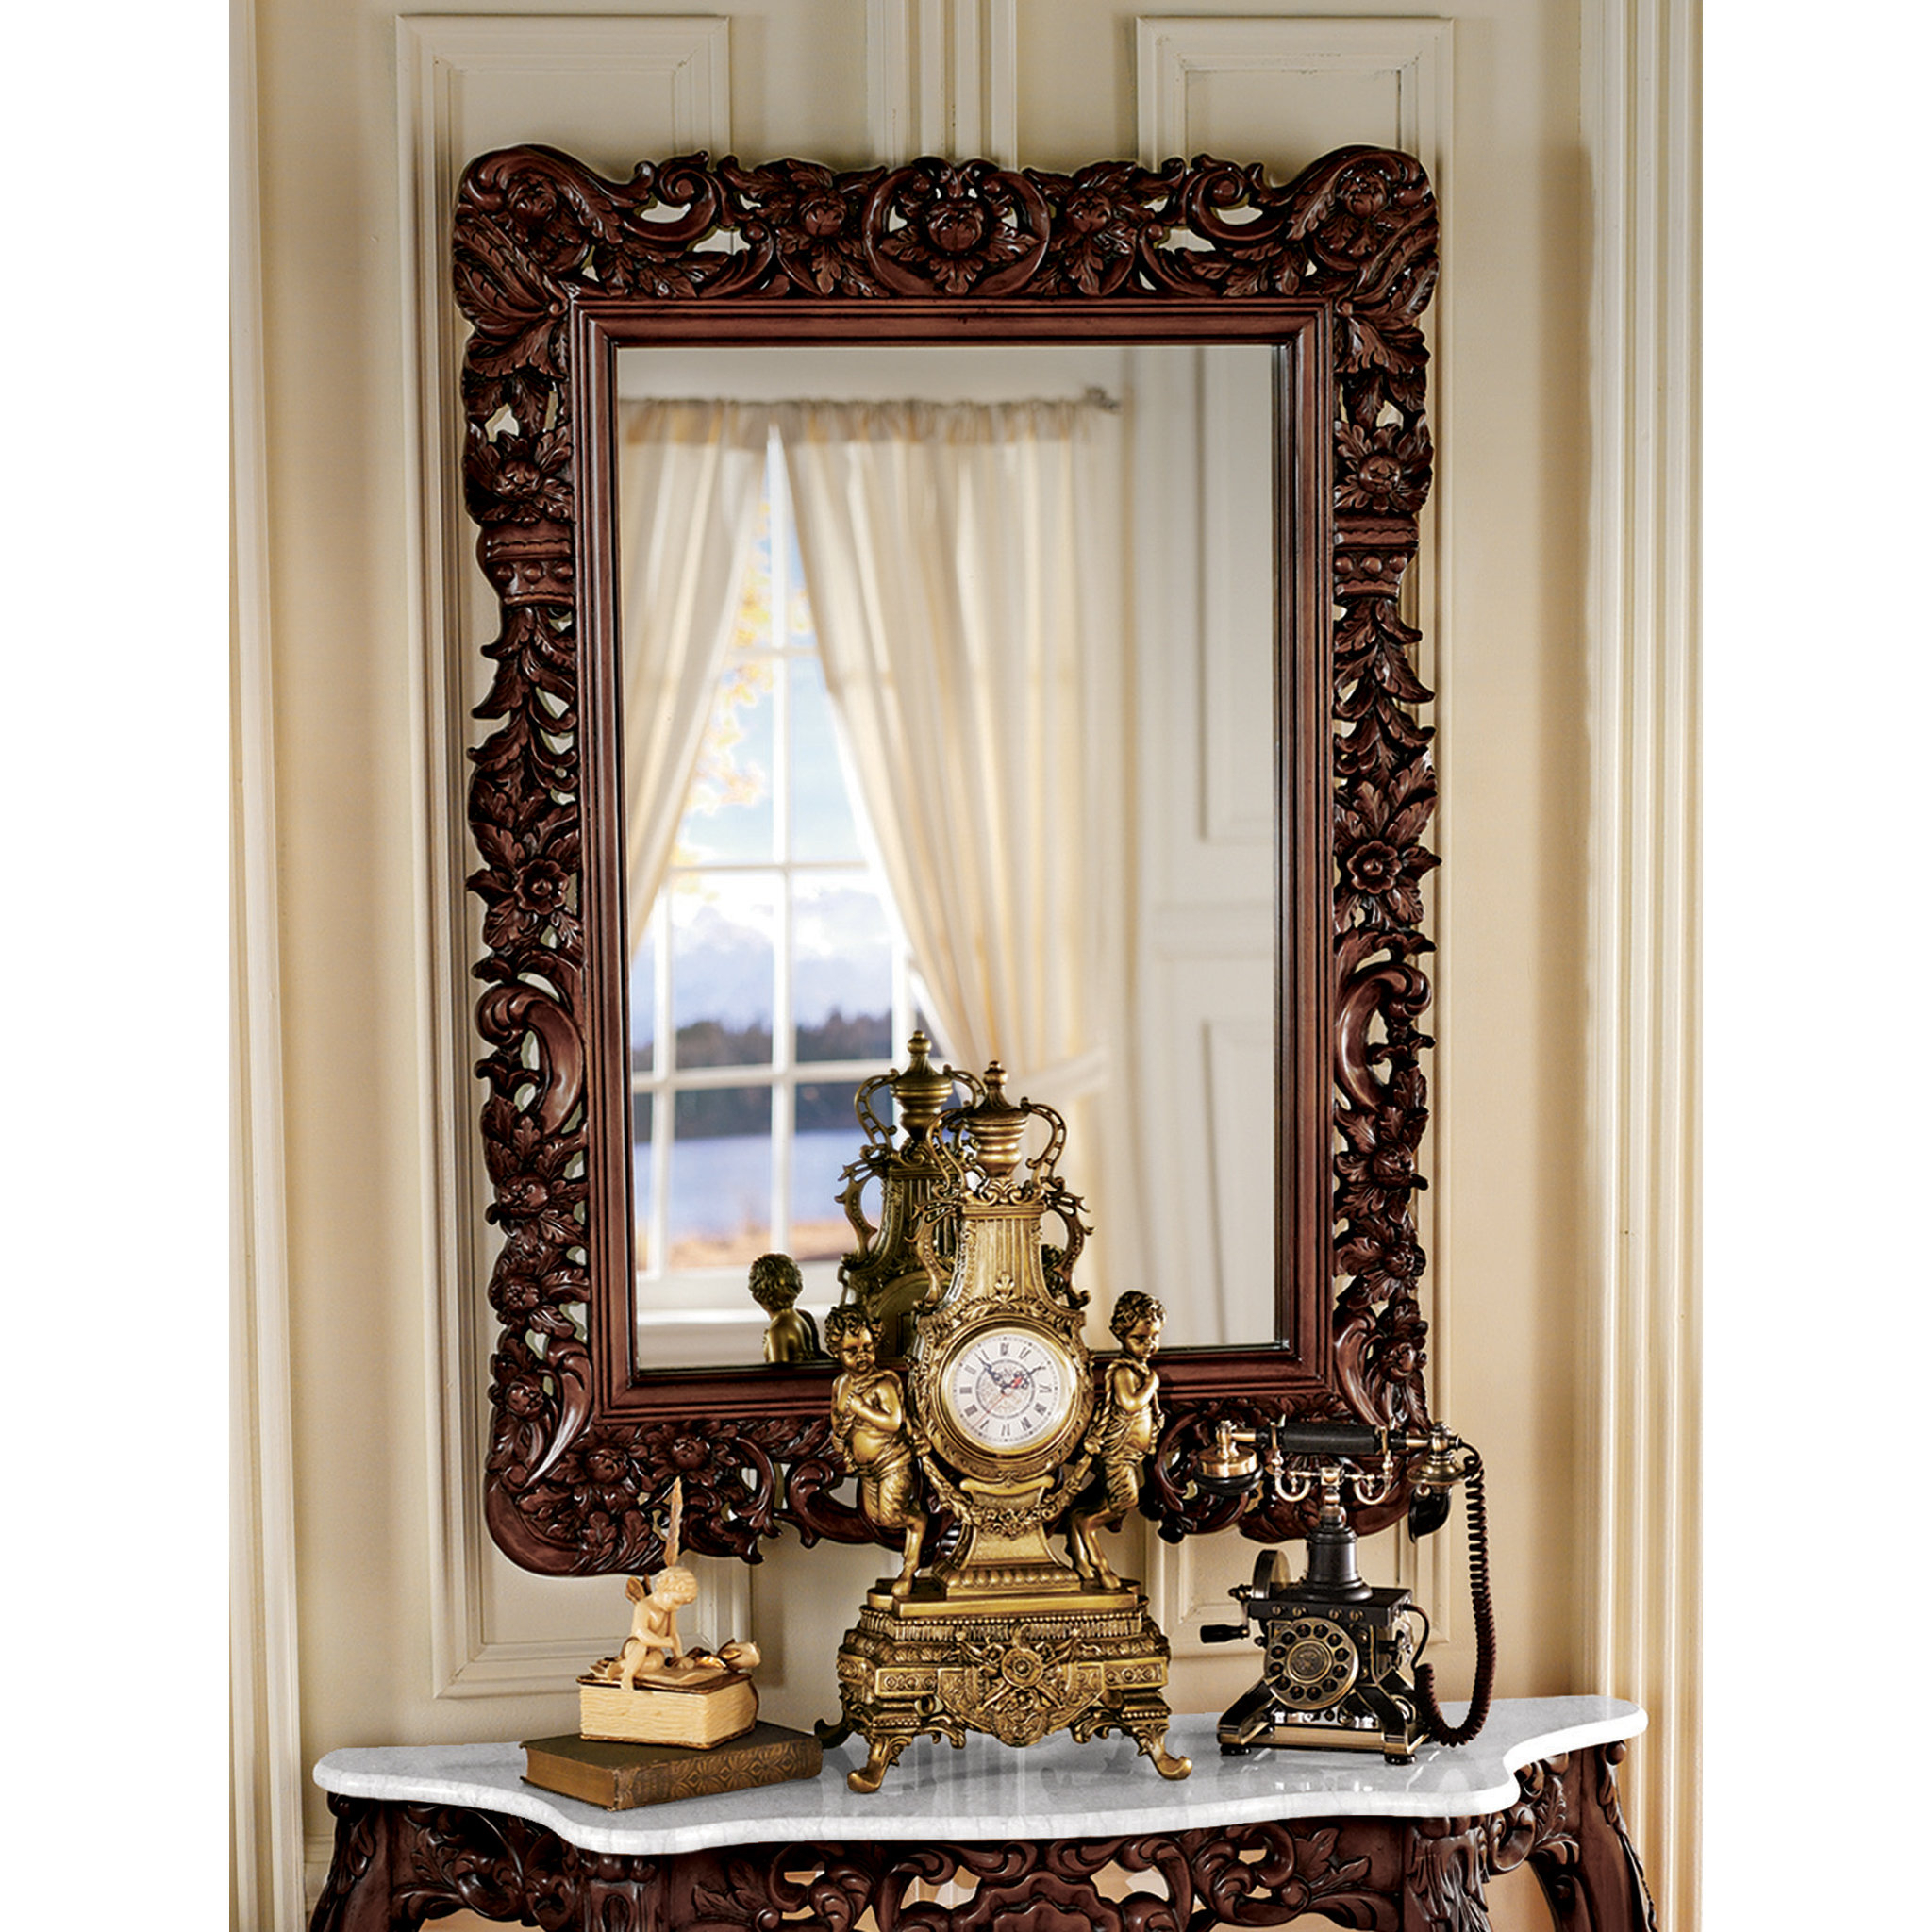 Royal Baroque Wall Mirror Pertaining To Latest Baroque Wall Mirrors (Gallery 15 of 20)